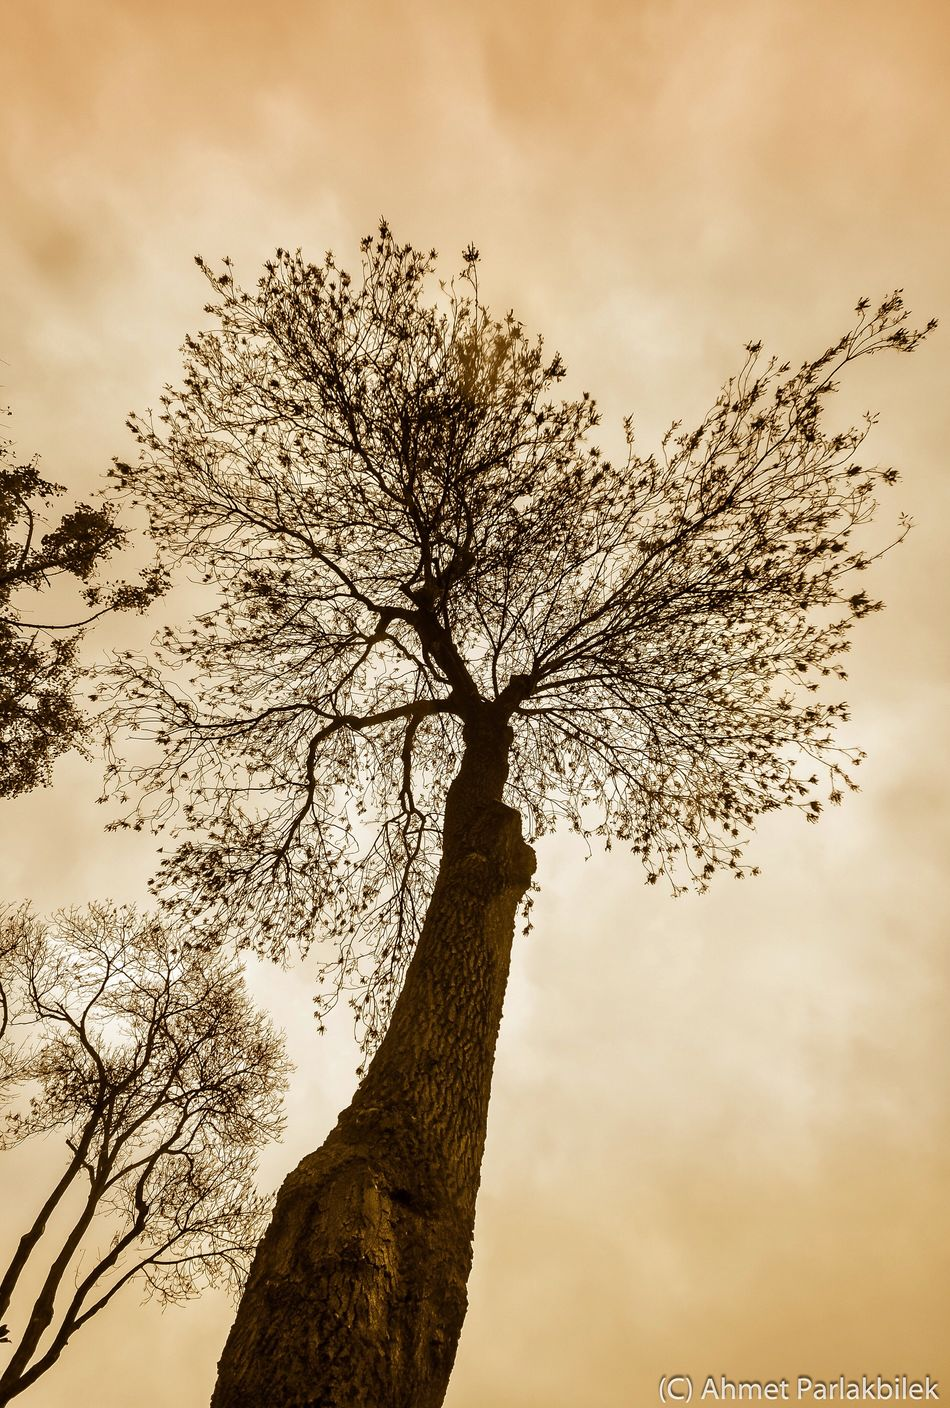 Tree Sky Nature Low Angle View No People Cloud - Sky Growth Outdoors Scenics Branch Beauty In Nature Day